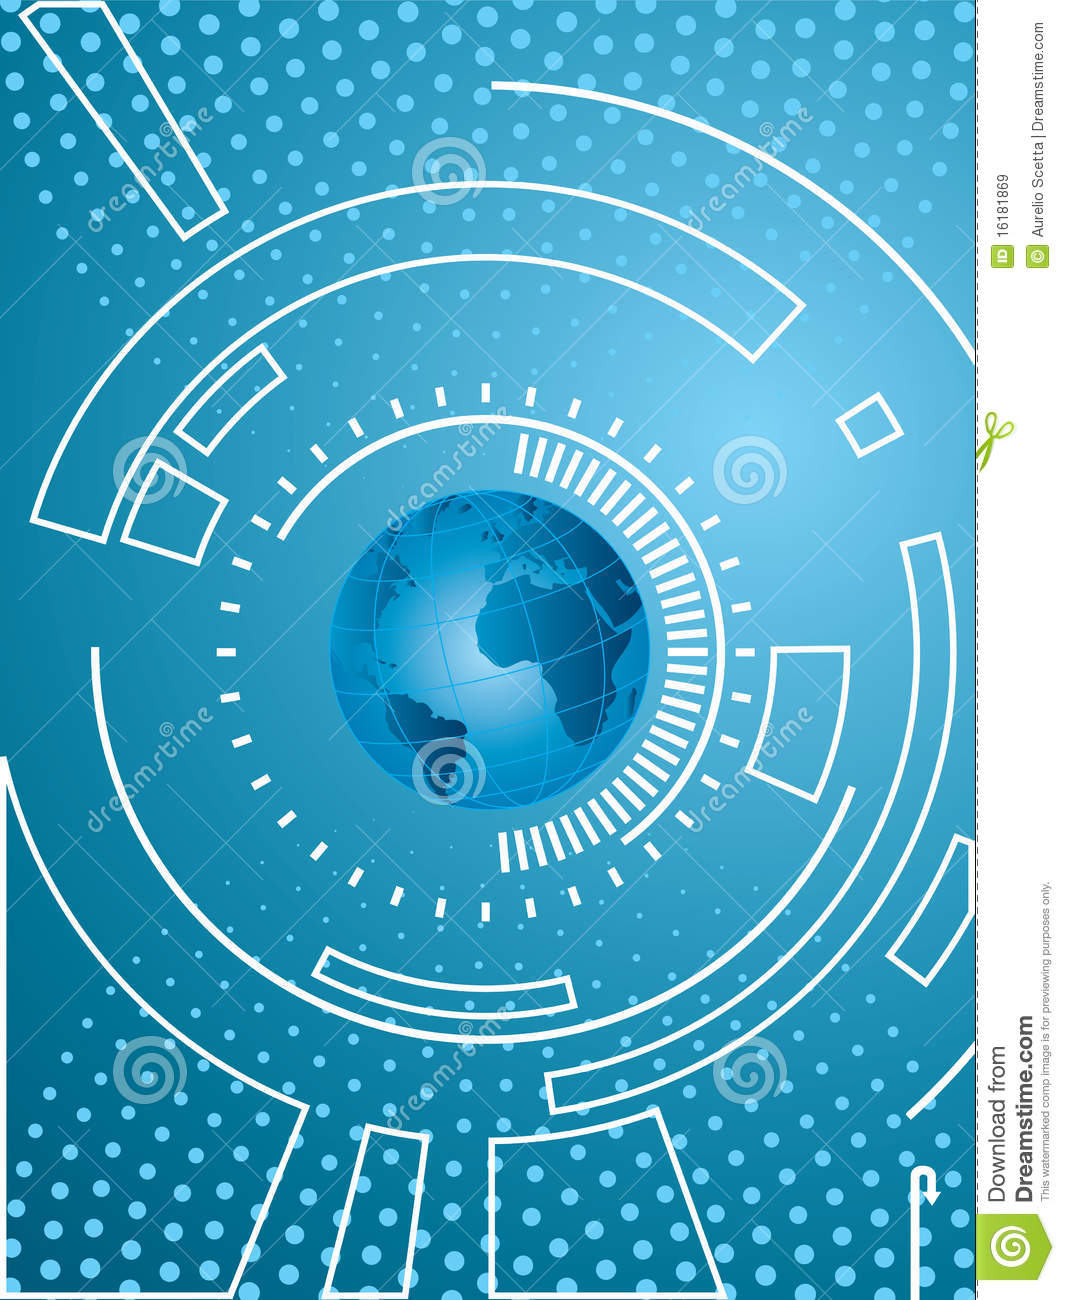 Vector Background With Technology Stock Vector ...